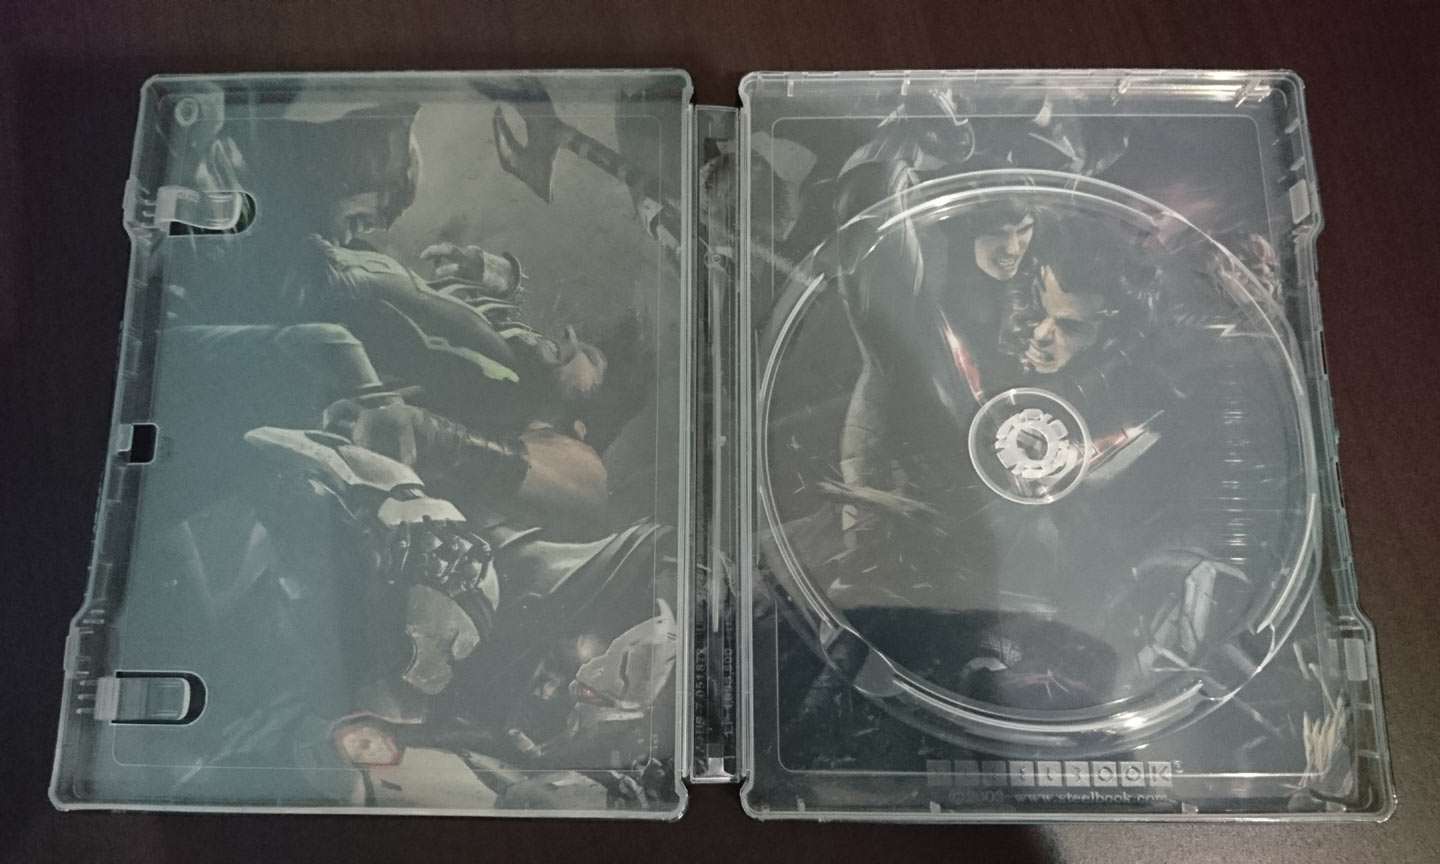 Injustice-2-steelbook-2